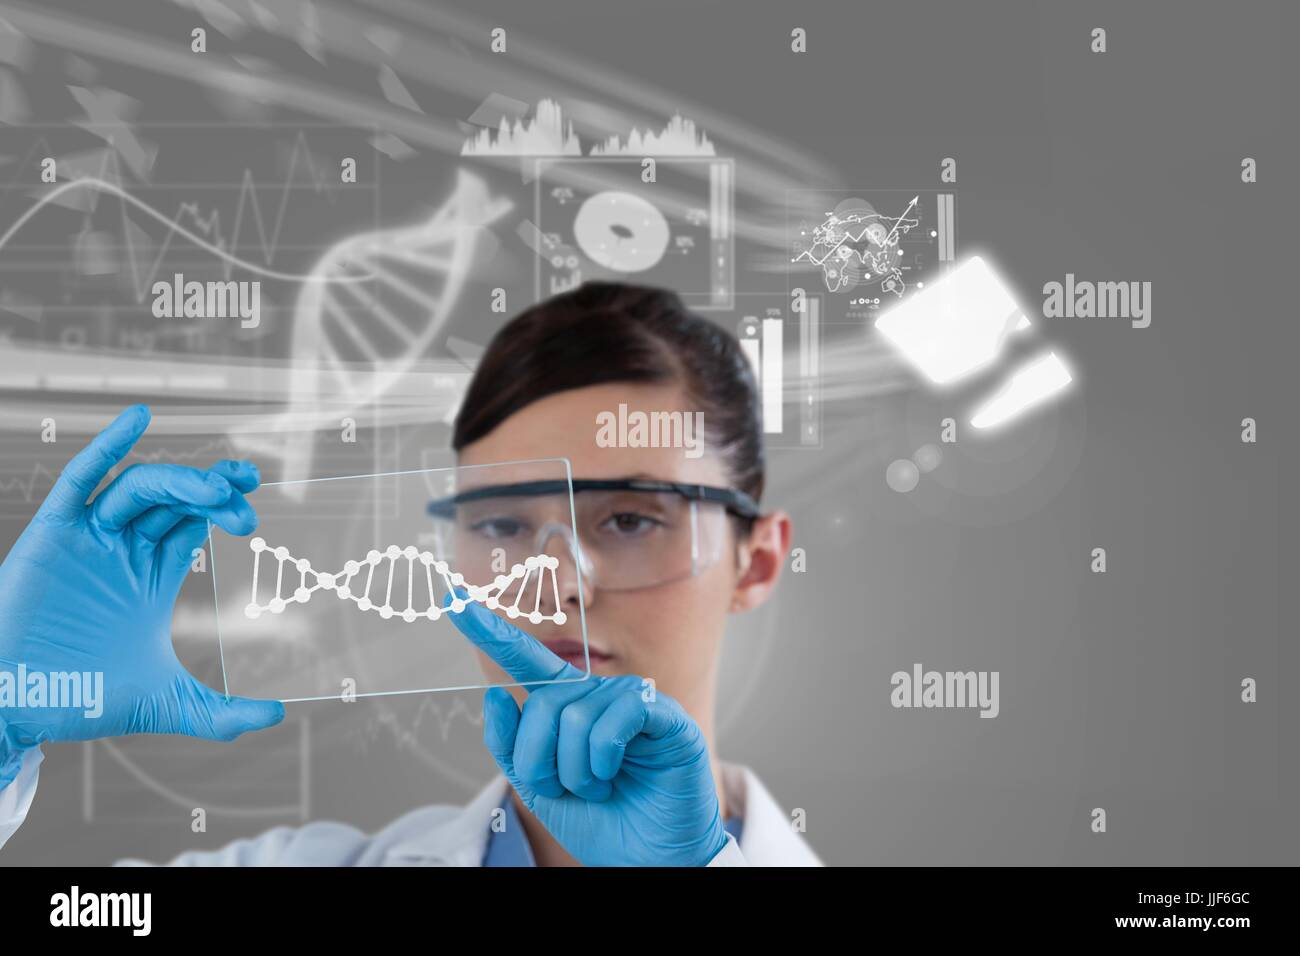 Digital composite of Medical models with DNA graphics - Stock Image